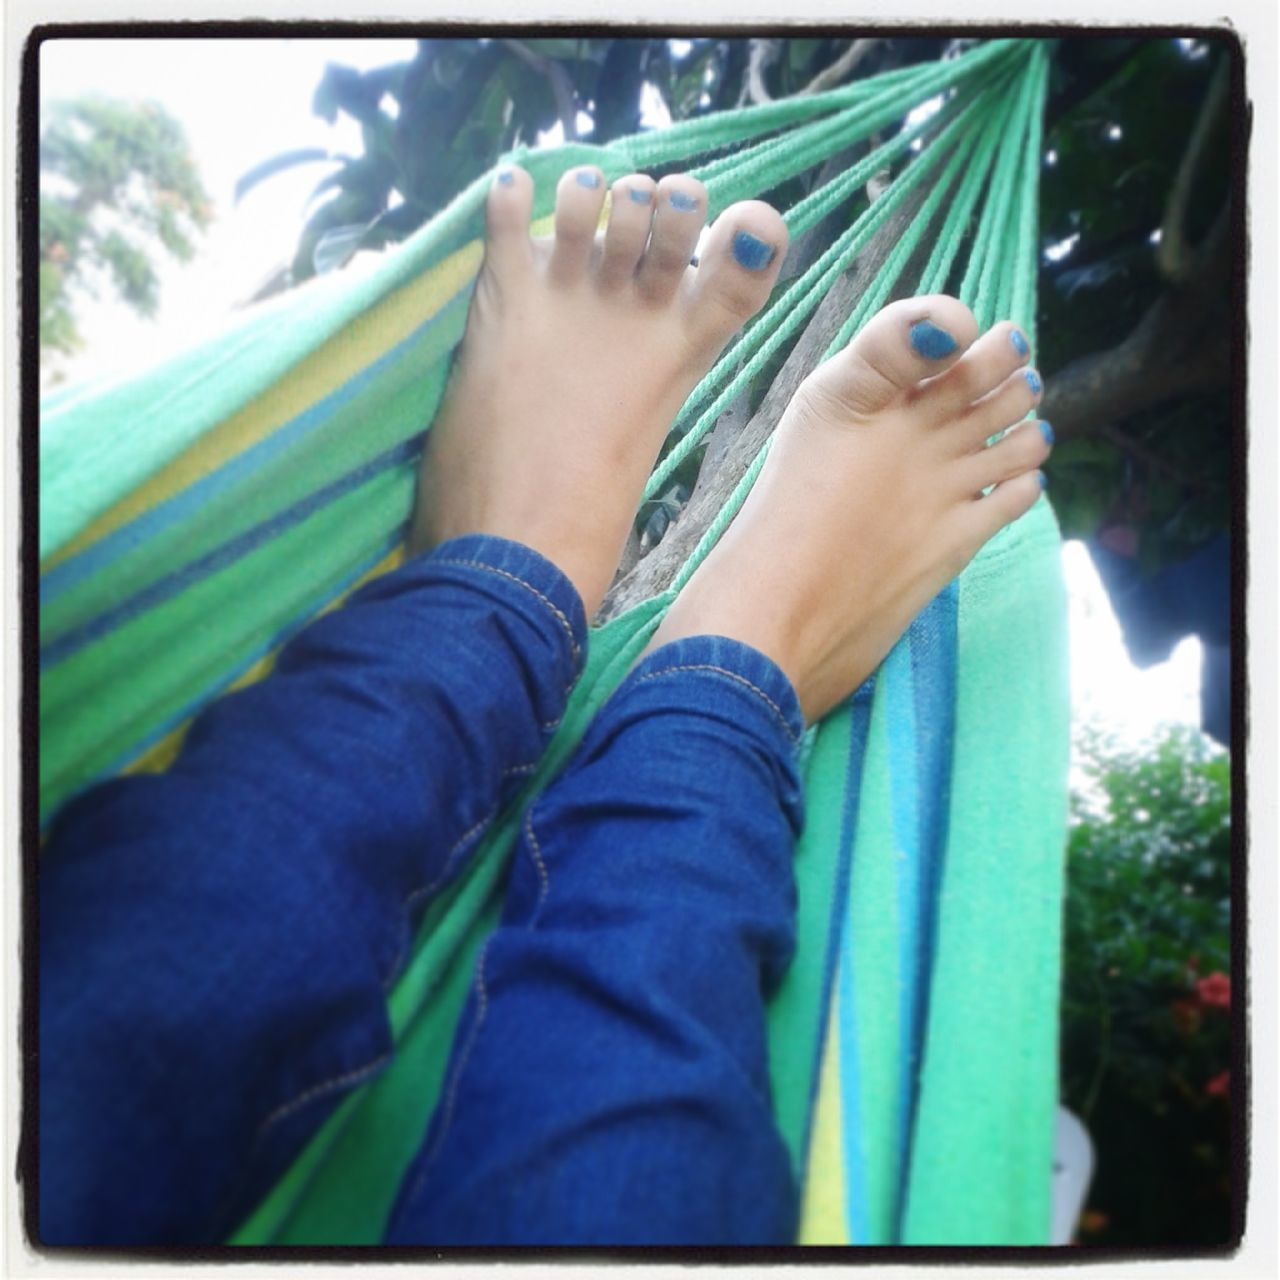 relax on hammock Blue Casual Clothing Day Enamel Feet Hammock Leisure Activity Lifestyles Outdoors Part Of Personal Perspective Relaxation Resting Sitting Teanager Woman